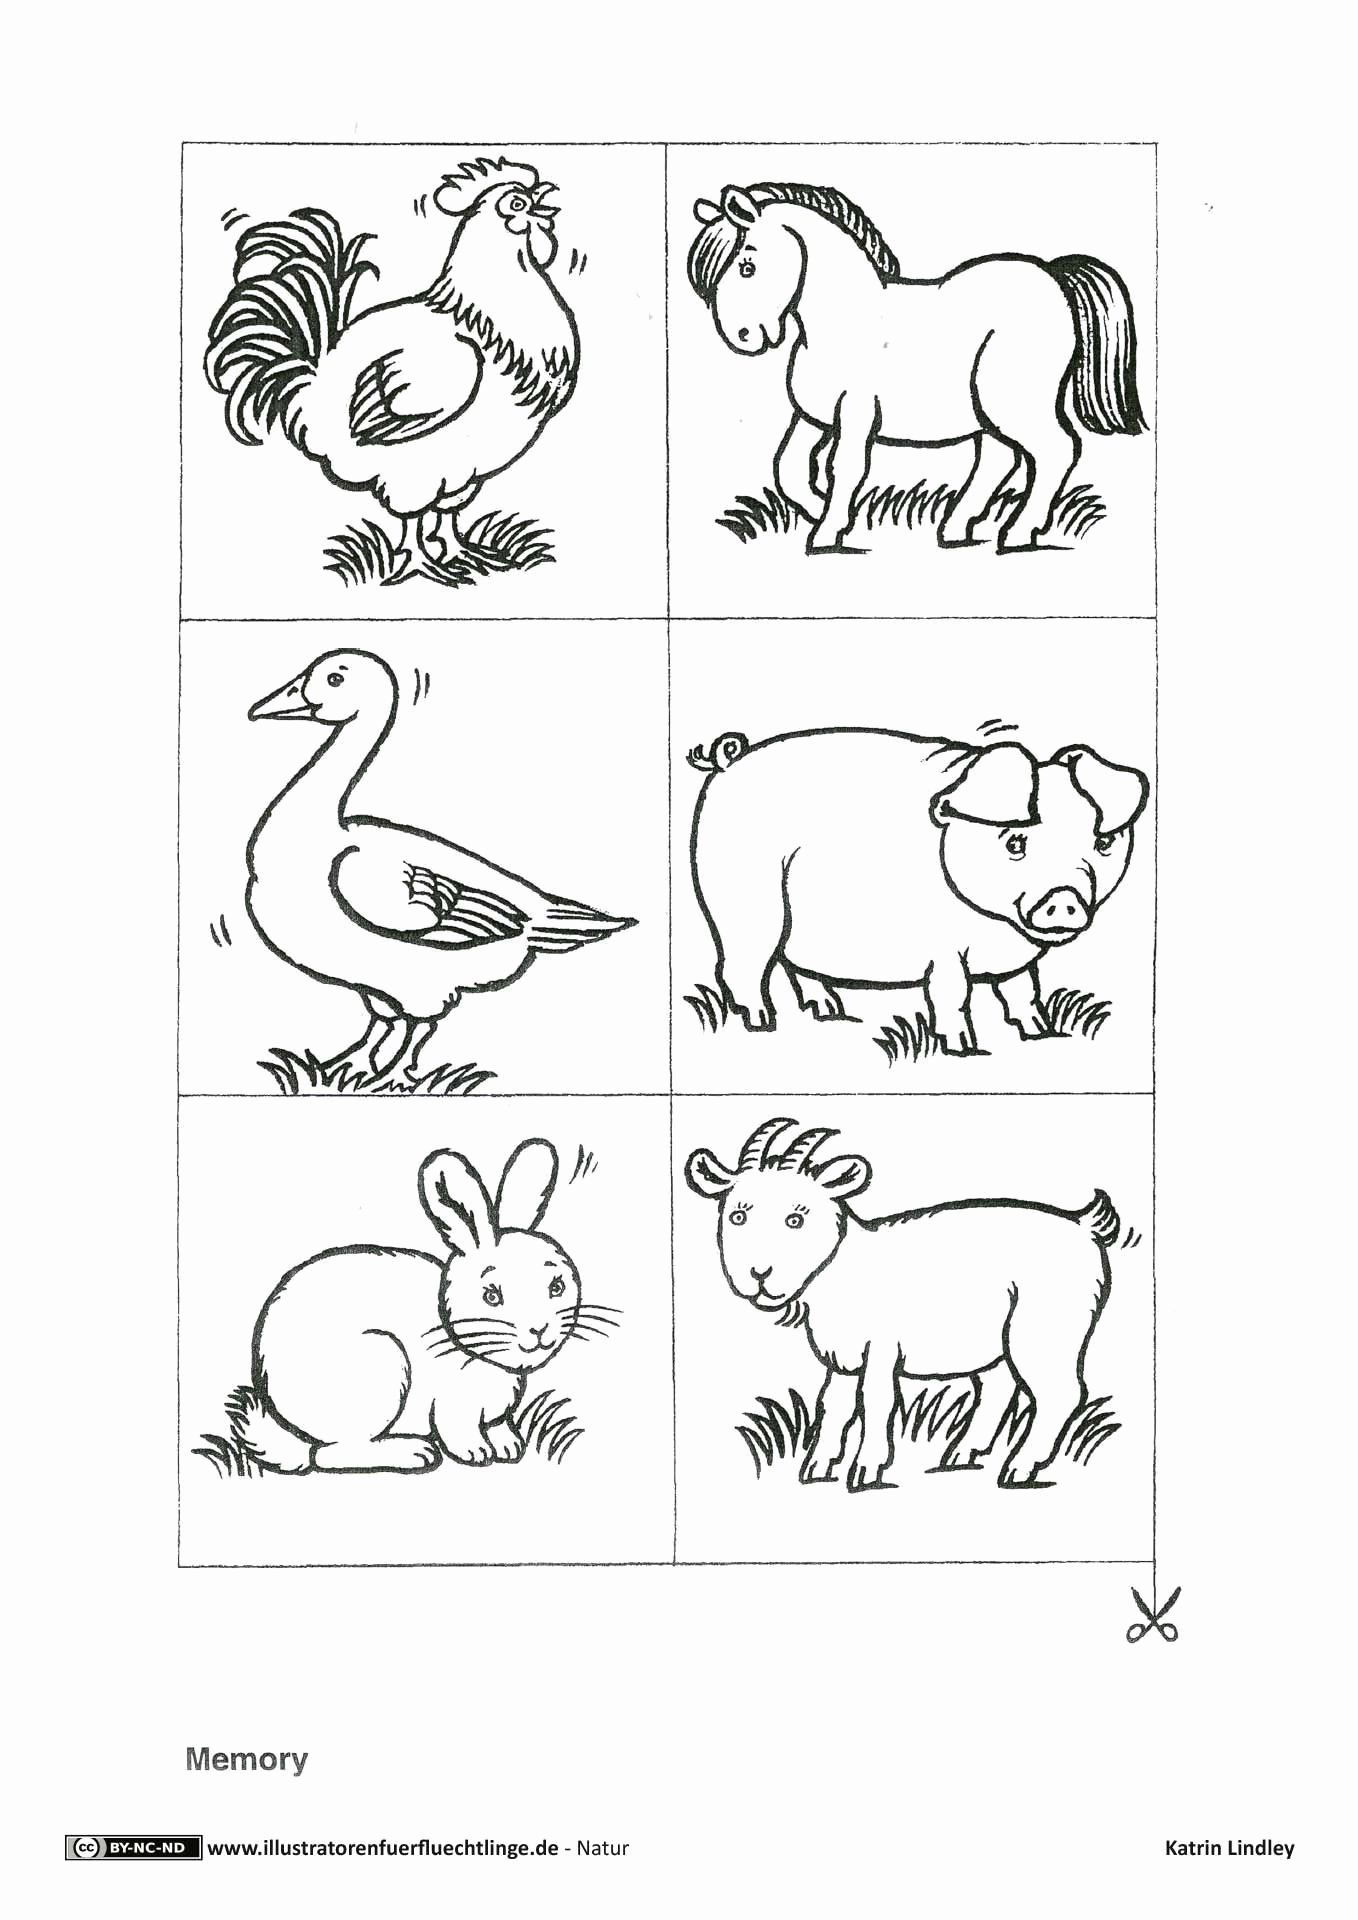 Farm Animals Coloring Pages Pdf Luxury Download Als Pdf 2 Seiten Natur Bauernhof Tiere Memory In 2020 Farm Animal Coloring Pages Farm Animals Coloring Pages